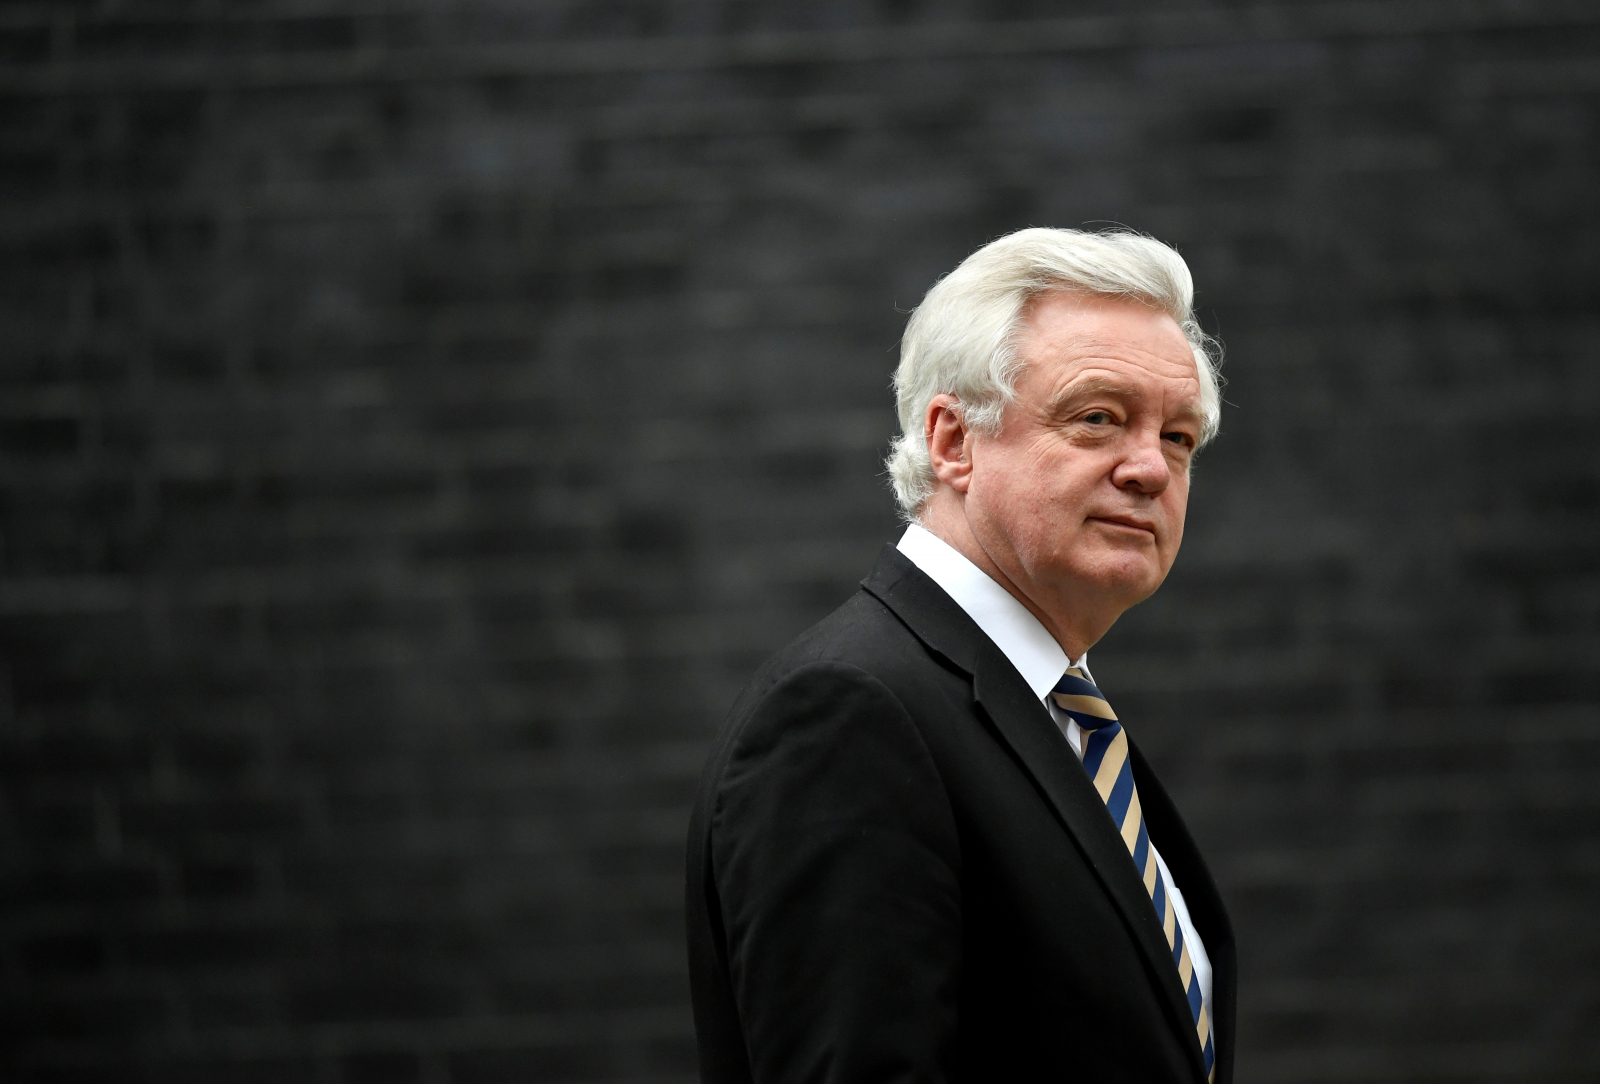 David Davis quits as Brexit secretary